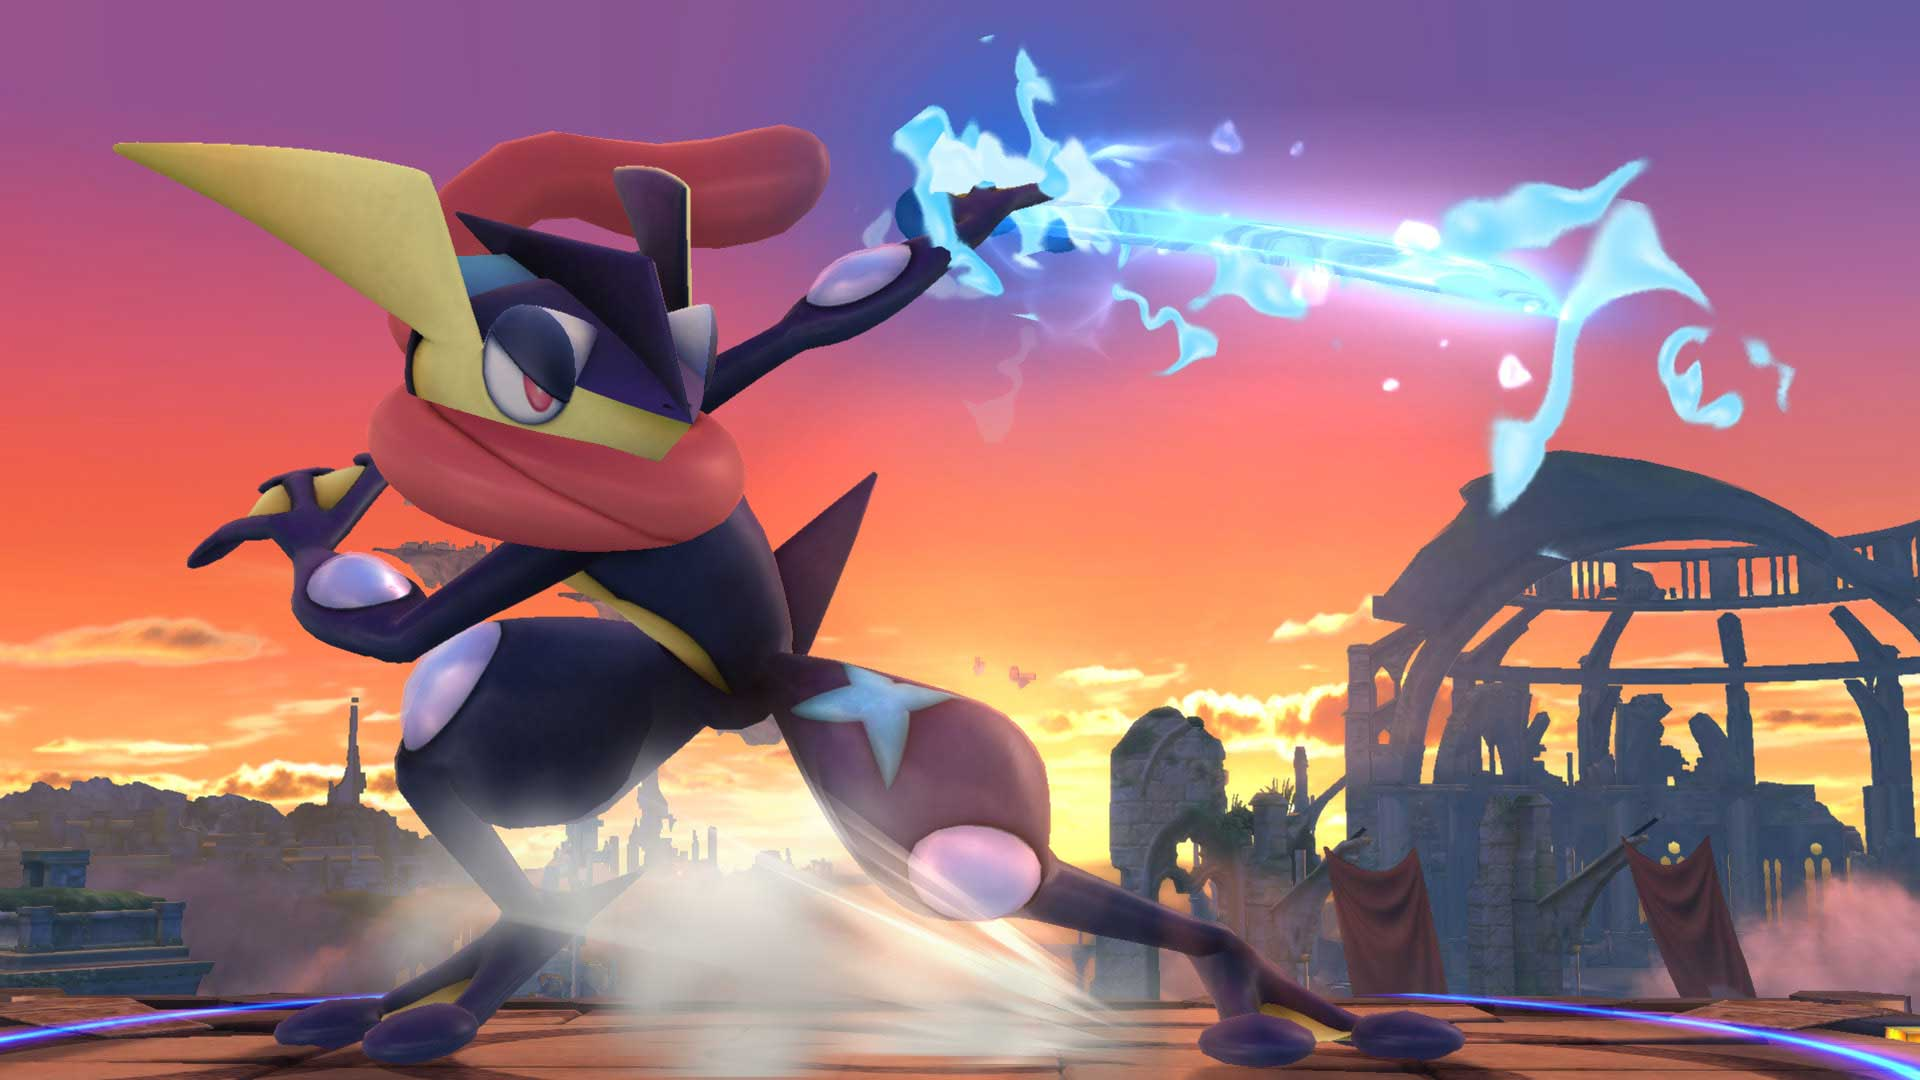 Greninja and Charizard added to Super Smash Bros roster